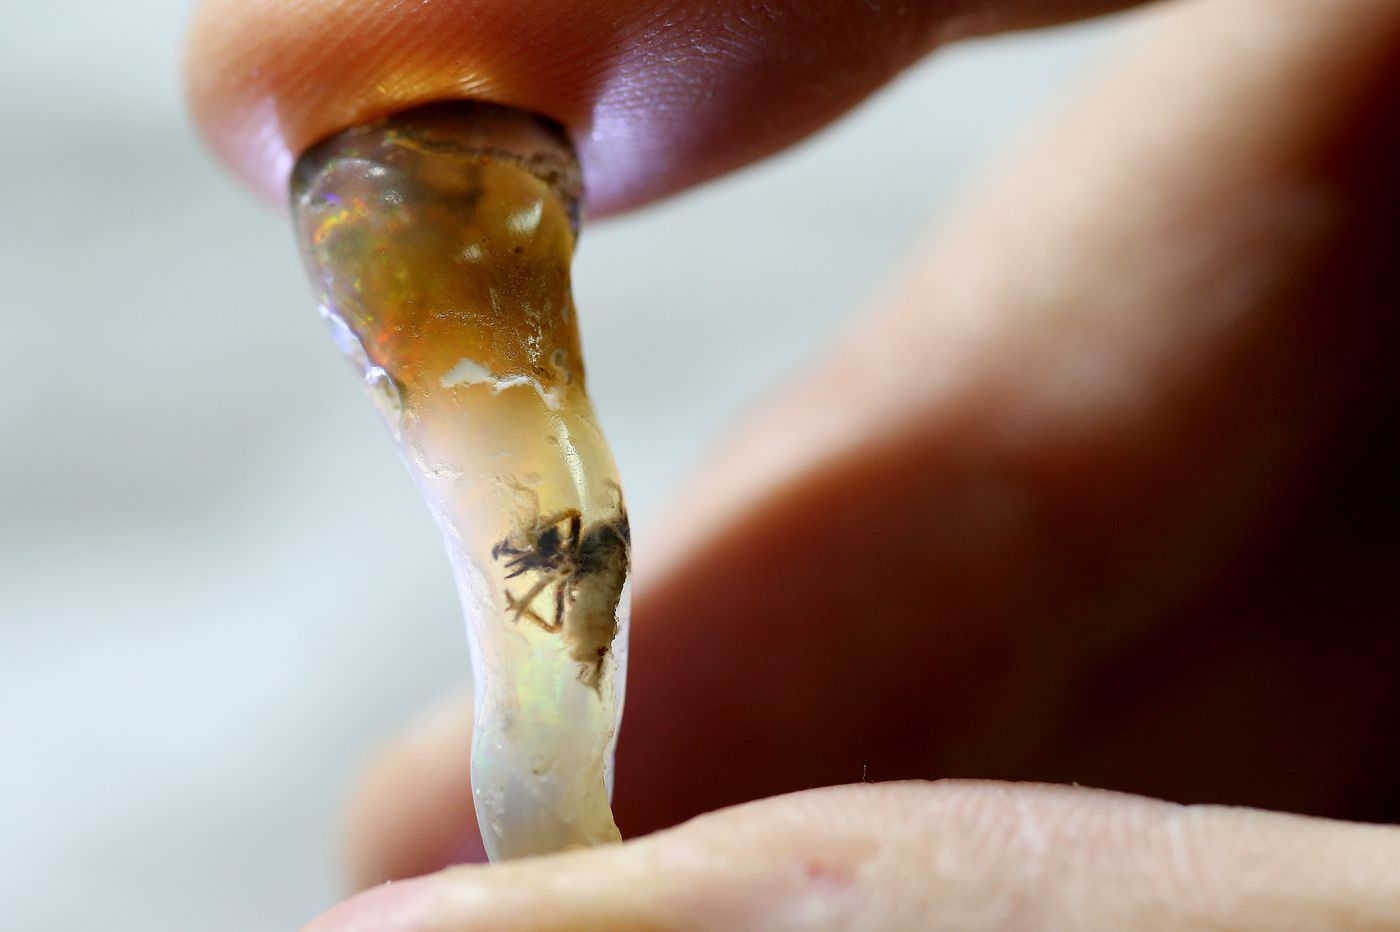 Insect trapped in precious gem is mystery for Bucks County dealer, scientists